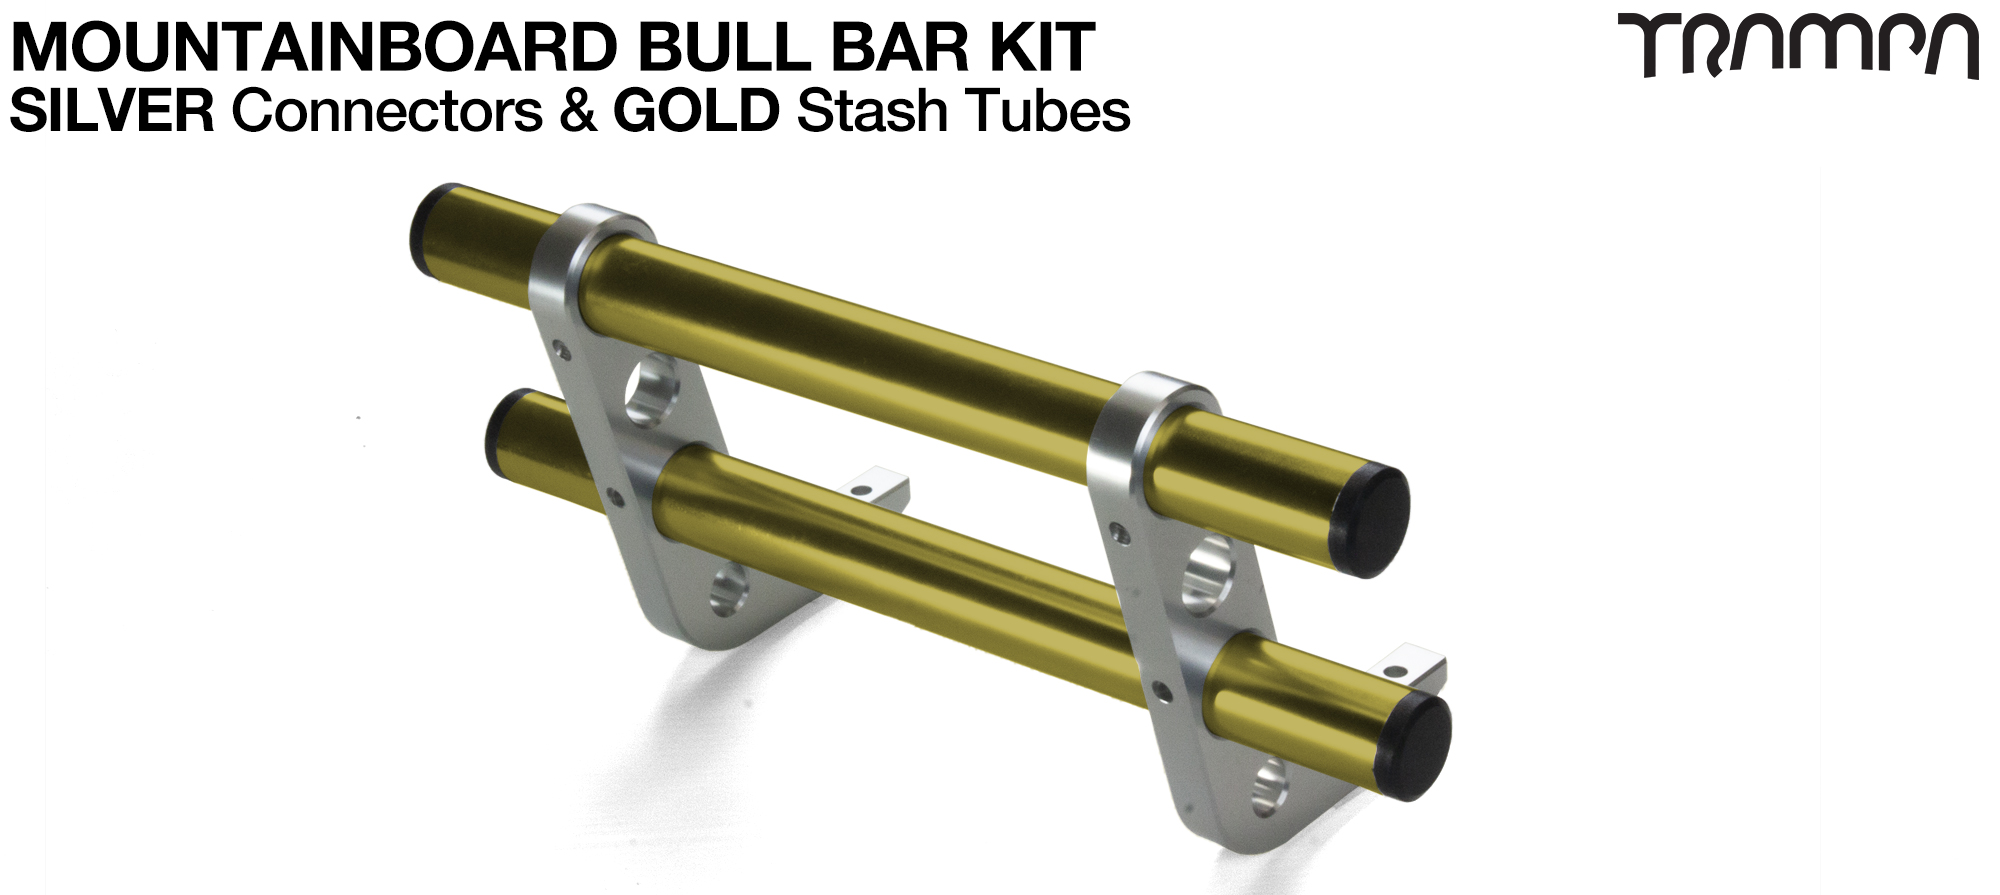 SILVER Uprights & GOLD Crossbar BULL BARS for MOUNTAINBOARDS T6 Heat Treated CNC'd Aluminium Uprights, with Hollow Aluminium Stash Tubes with Rubber end bungs